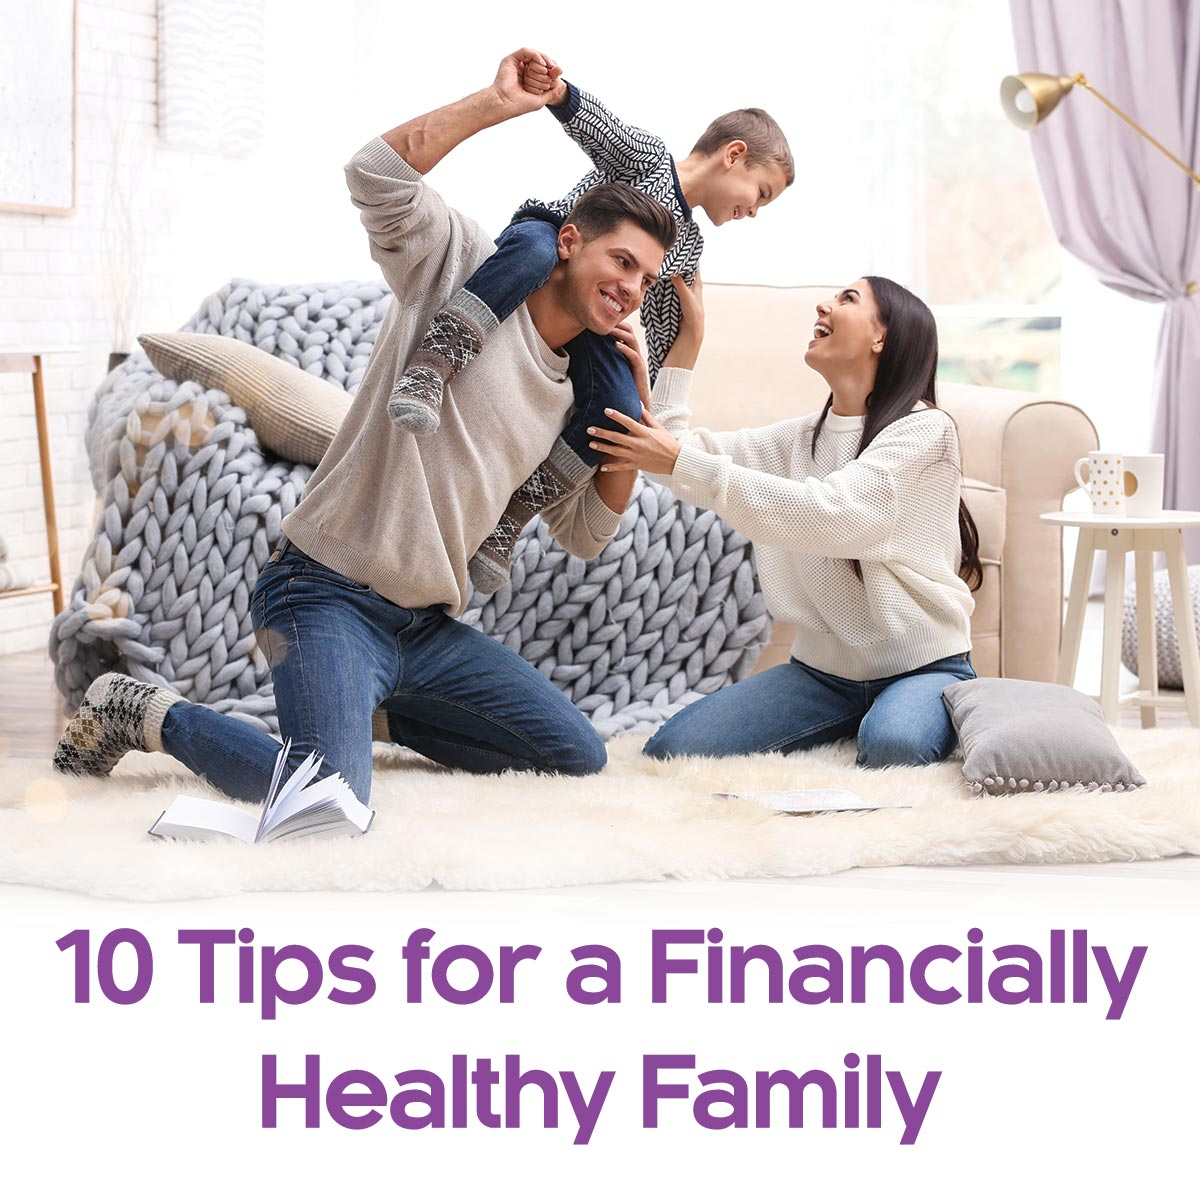 10 Tips for a Financially Healthy Family